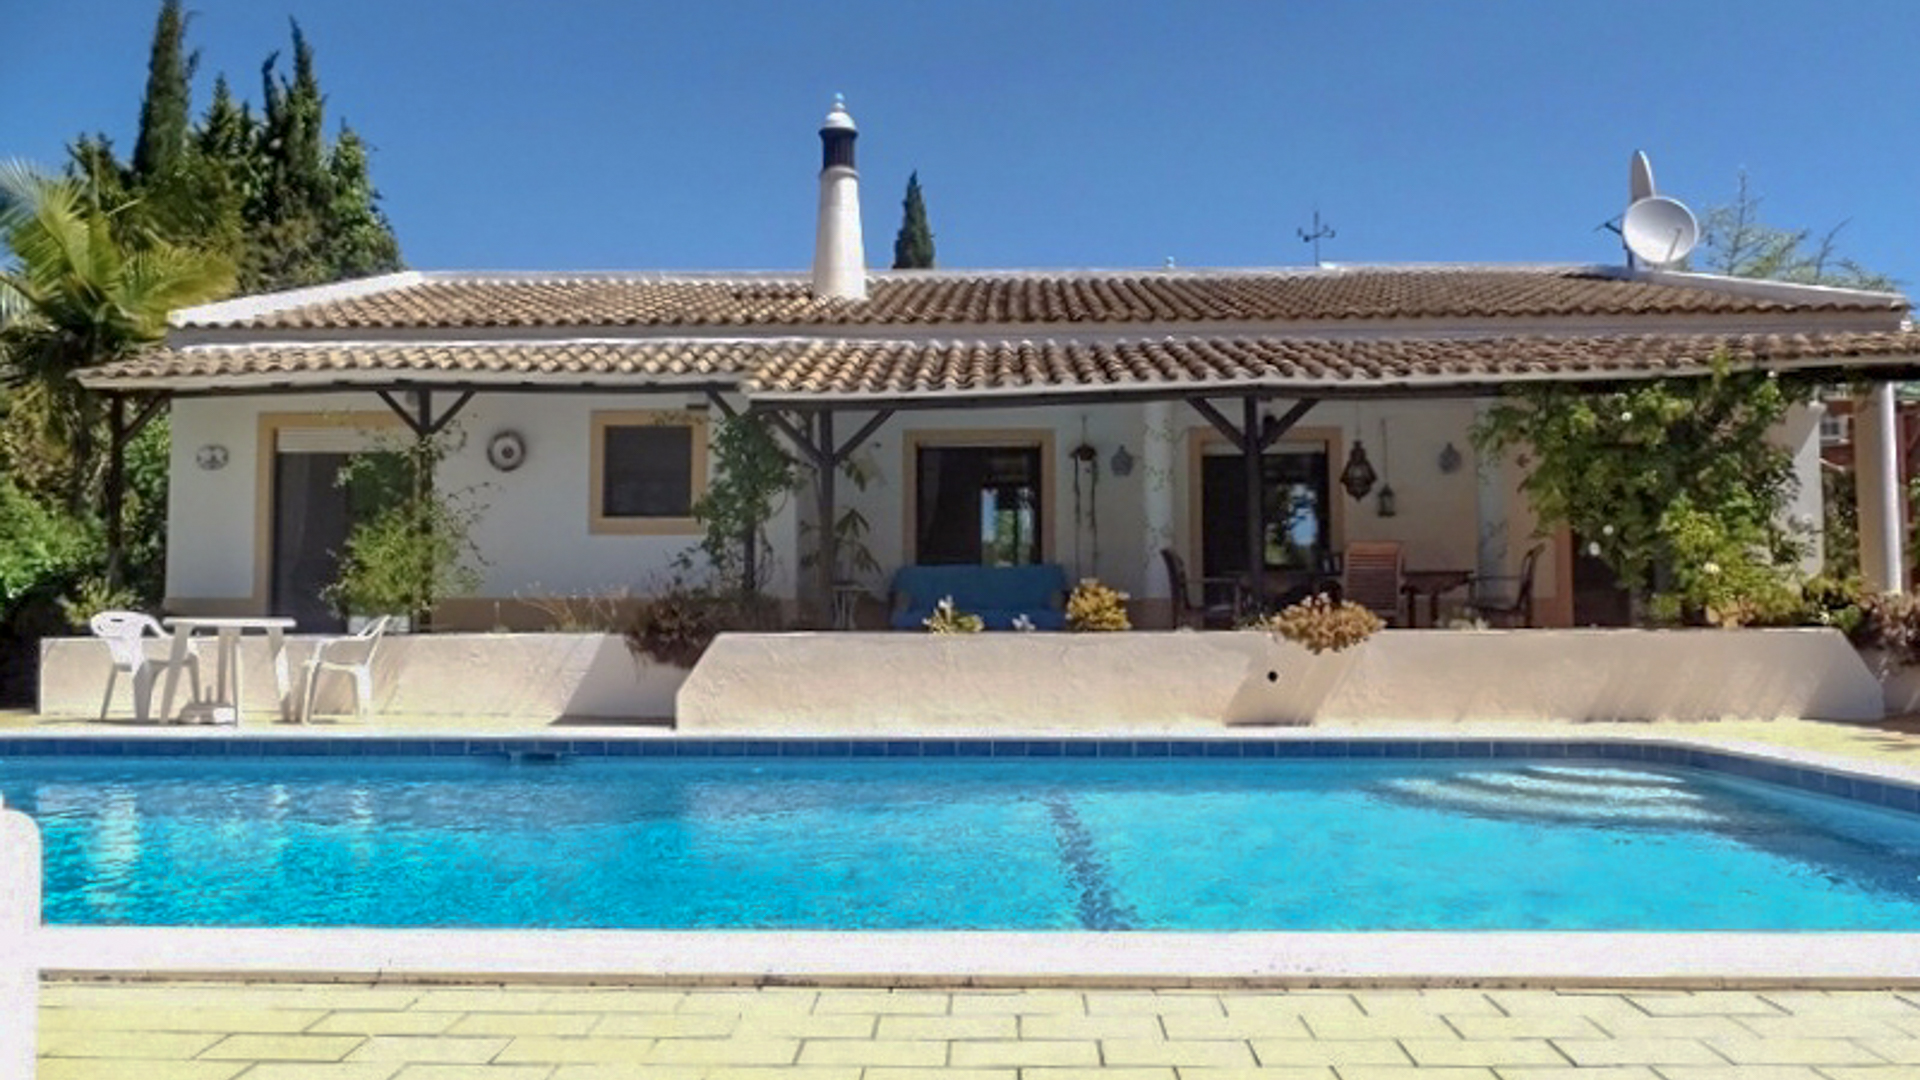 3 bedroom house with pool and beautiful gardens near Algoz | S2810